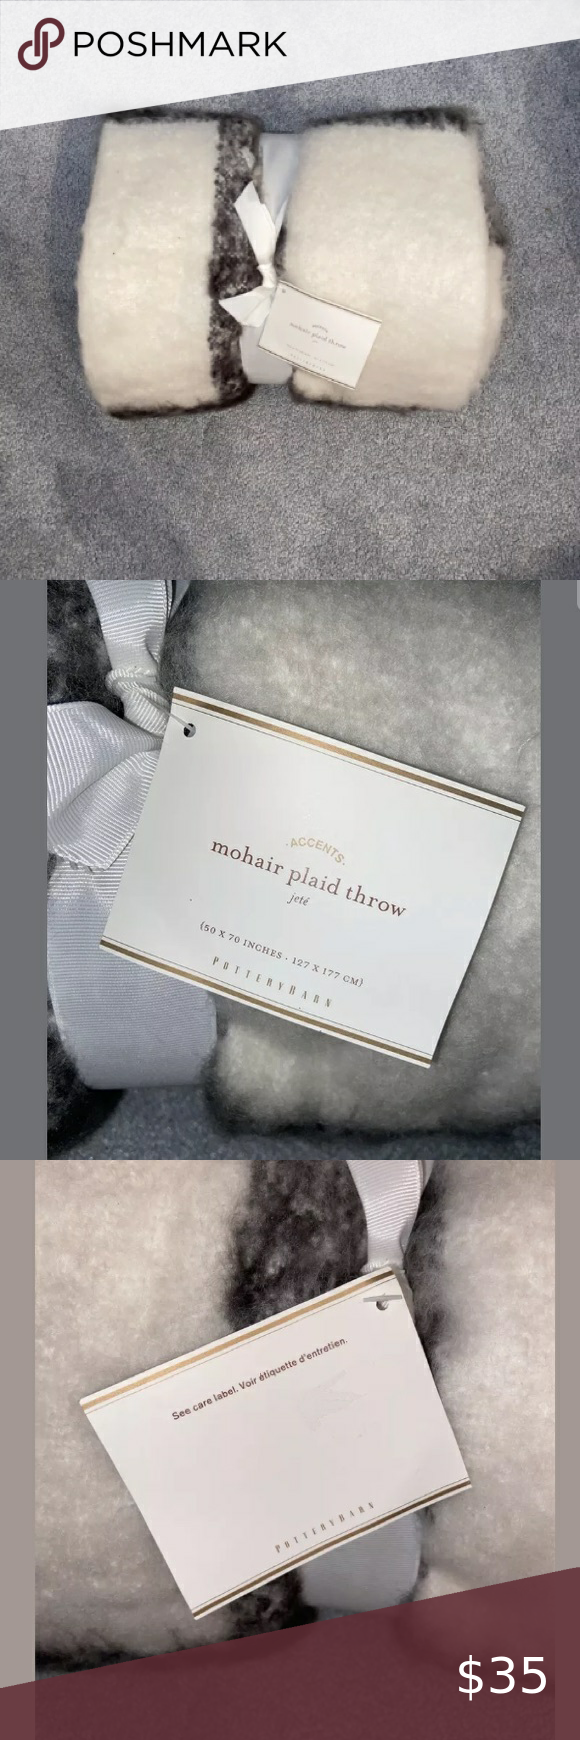 Pottery Barn White Grey Plaid Mohair Throw Blanket In 2020